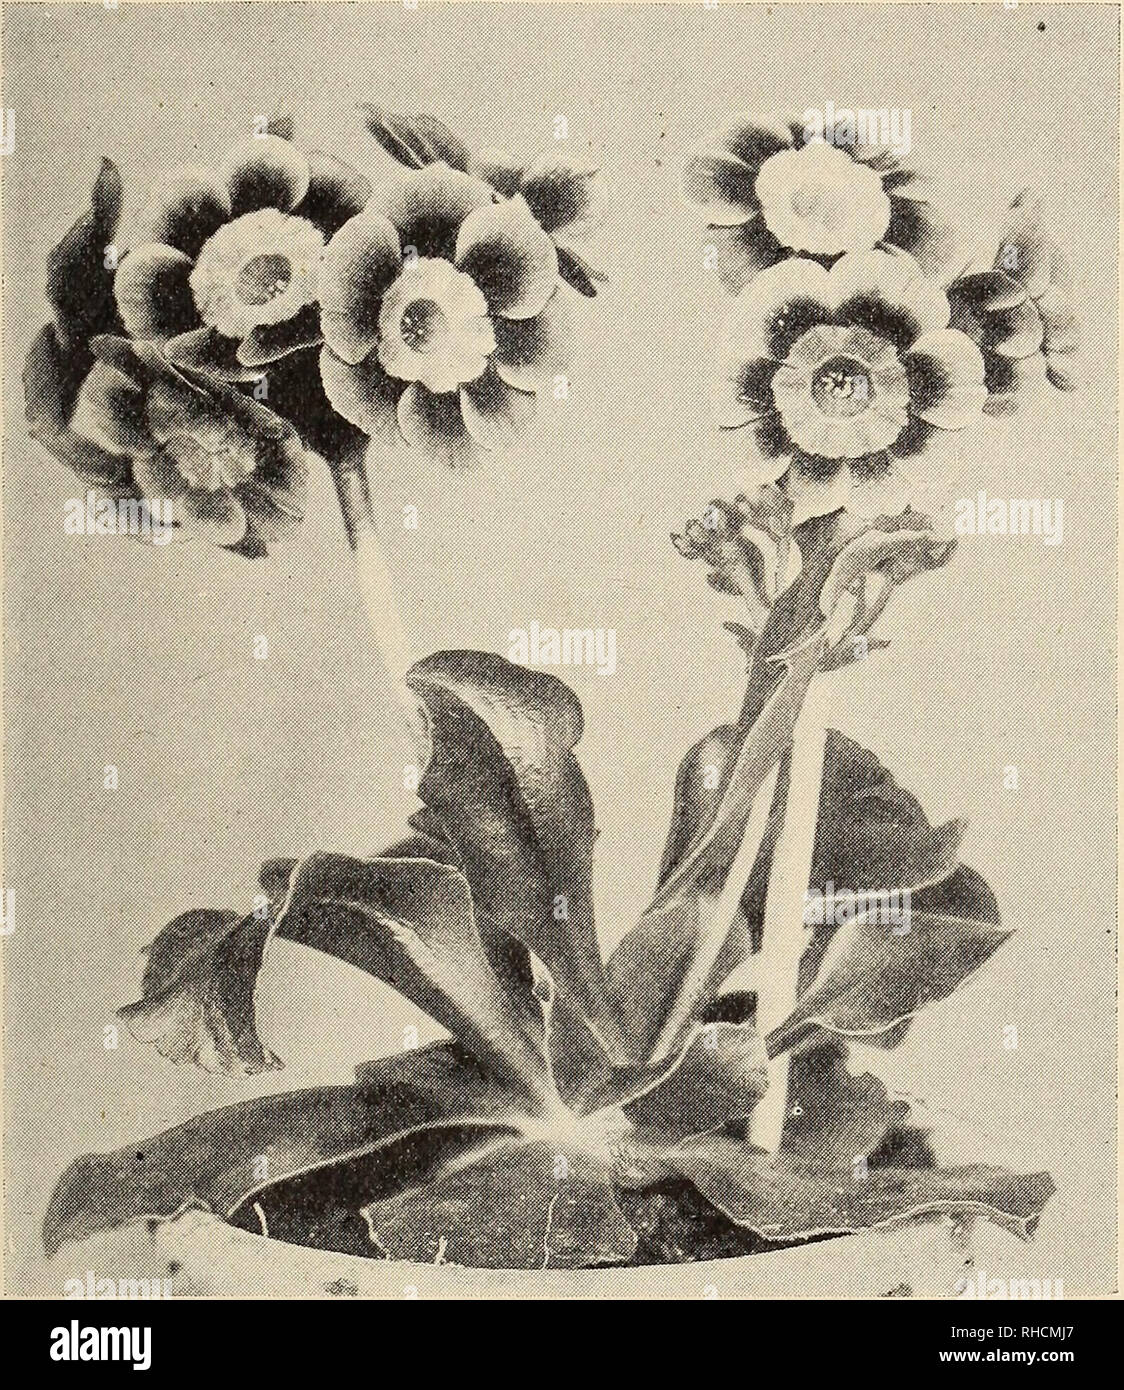 """. The Book of gardening; a handbook of horticulture. Gardening; Floriculture. ON florists' flowers. 51 Alpine Auriculas.—The following are the best twelve : Dean Hole (Douglas); Diadem (Gorton); Duke of York ; Edith (Turner); Firefly (Douglas); Minstrel (Douglas) ; Defiance (Turner); Mrs. Martin (Henwood) ; Mrs. Harry Turner (Turner); Miss Moon. Fig. 30.—Alpine Auricula Melaine. (Douglas); Nellie Hibberd (Douglas) ; Toujours Gaie (Douglas); and Perfection (Douglas). Pests.—There is one disease in connection with Auriculas which ought to be mentioned—the """"rot""""; this attacks the main r - Stock Image"""